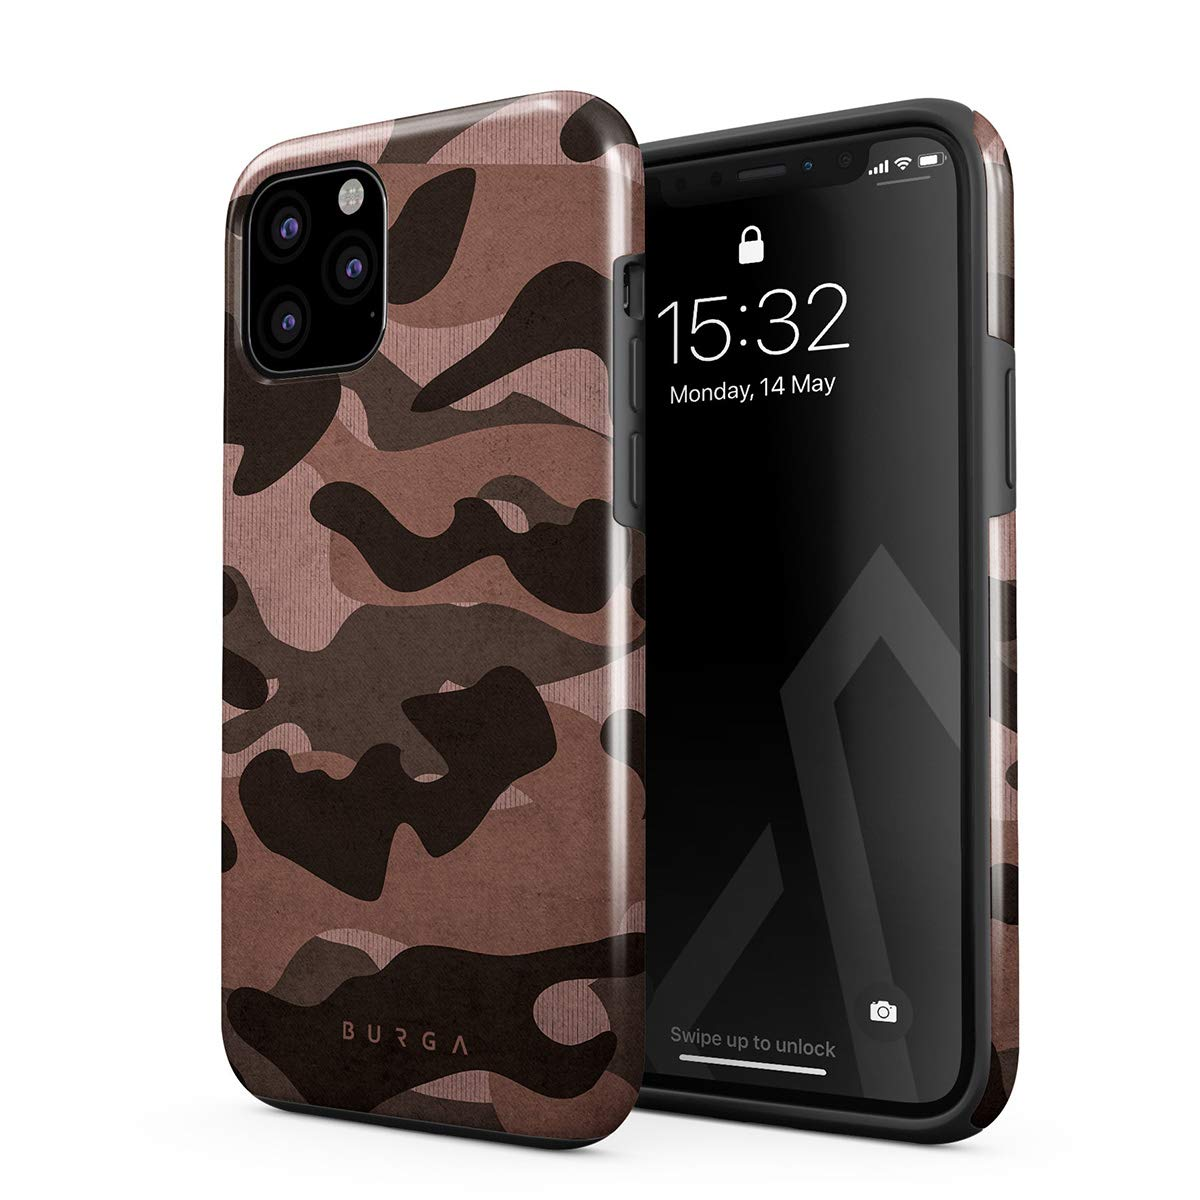 BURGA Phone Case Compatible with iPhone 11 PRO MAX - Pink Tiger Camo Camouflage Cute Case for Girls Heavy Duty Shockproof Dual Layer Hard Shell + Silicone Protective Cover